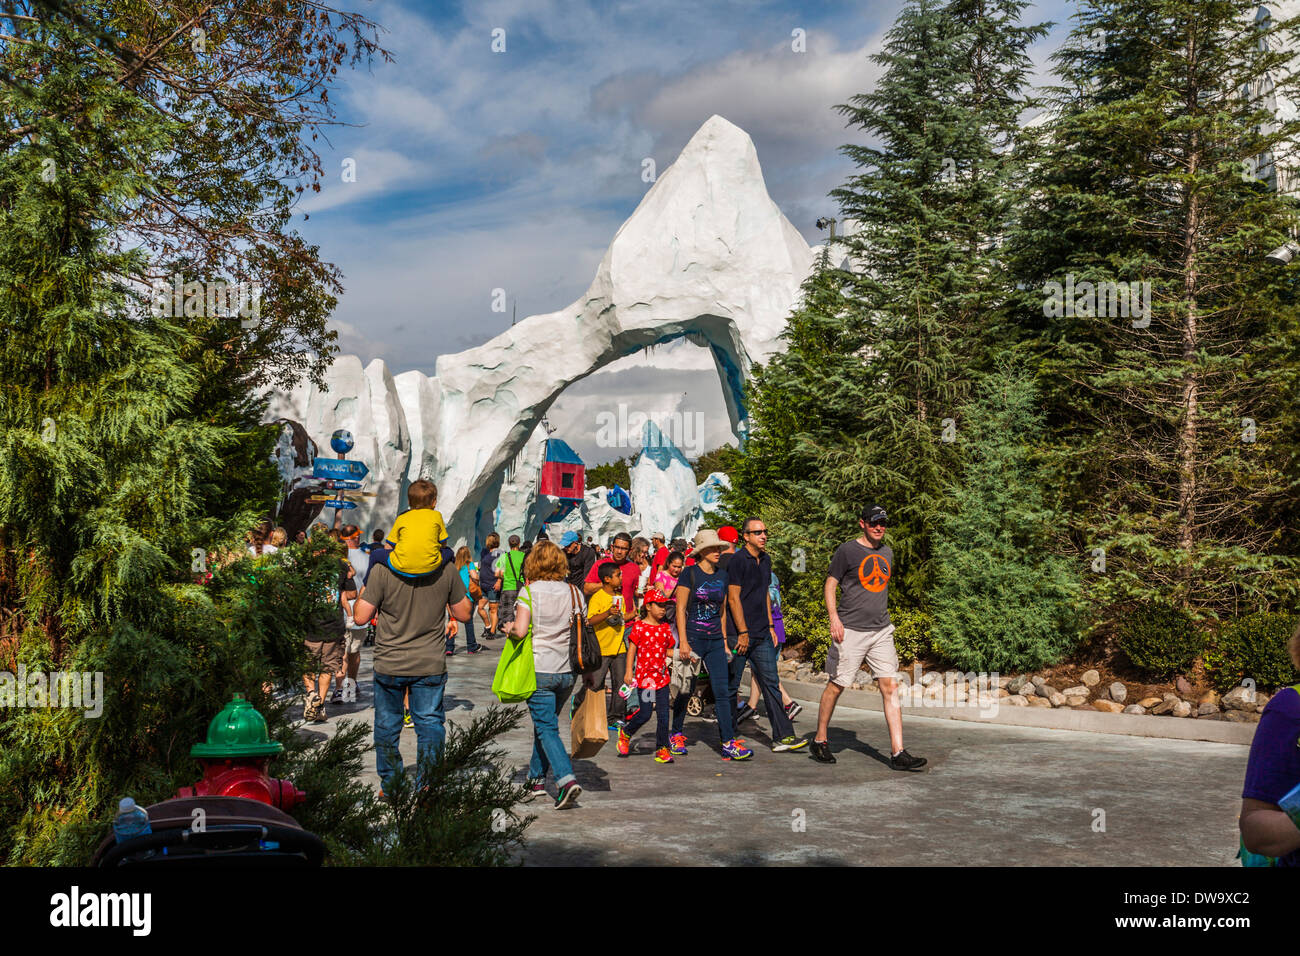 Park guests near entrance to Antarctica exhibit at SeaWorld, Orlando, FL - Stock Image